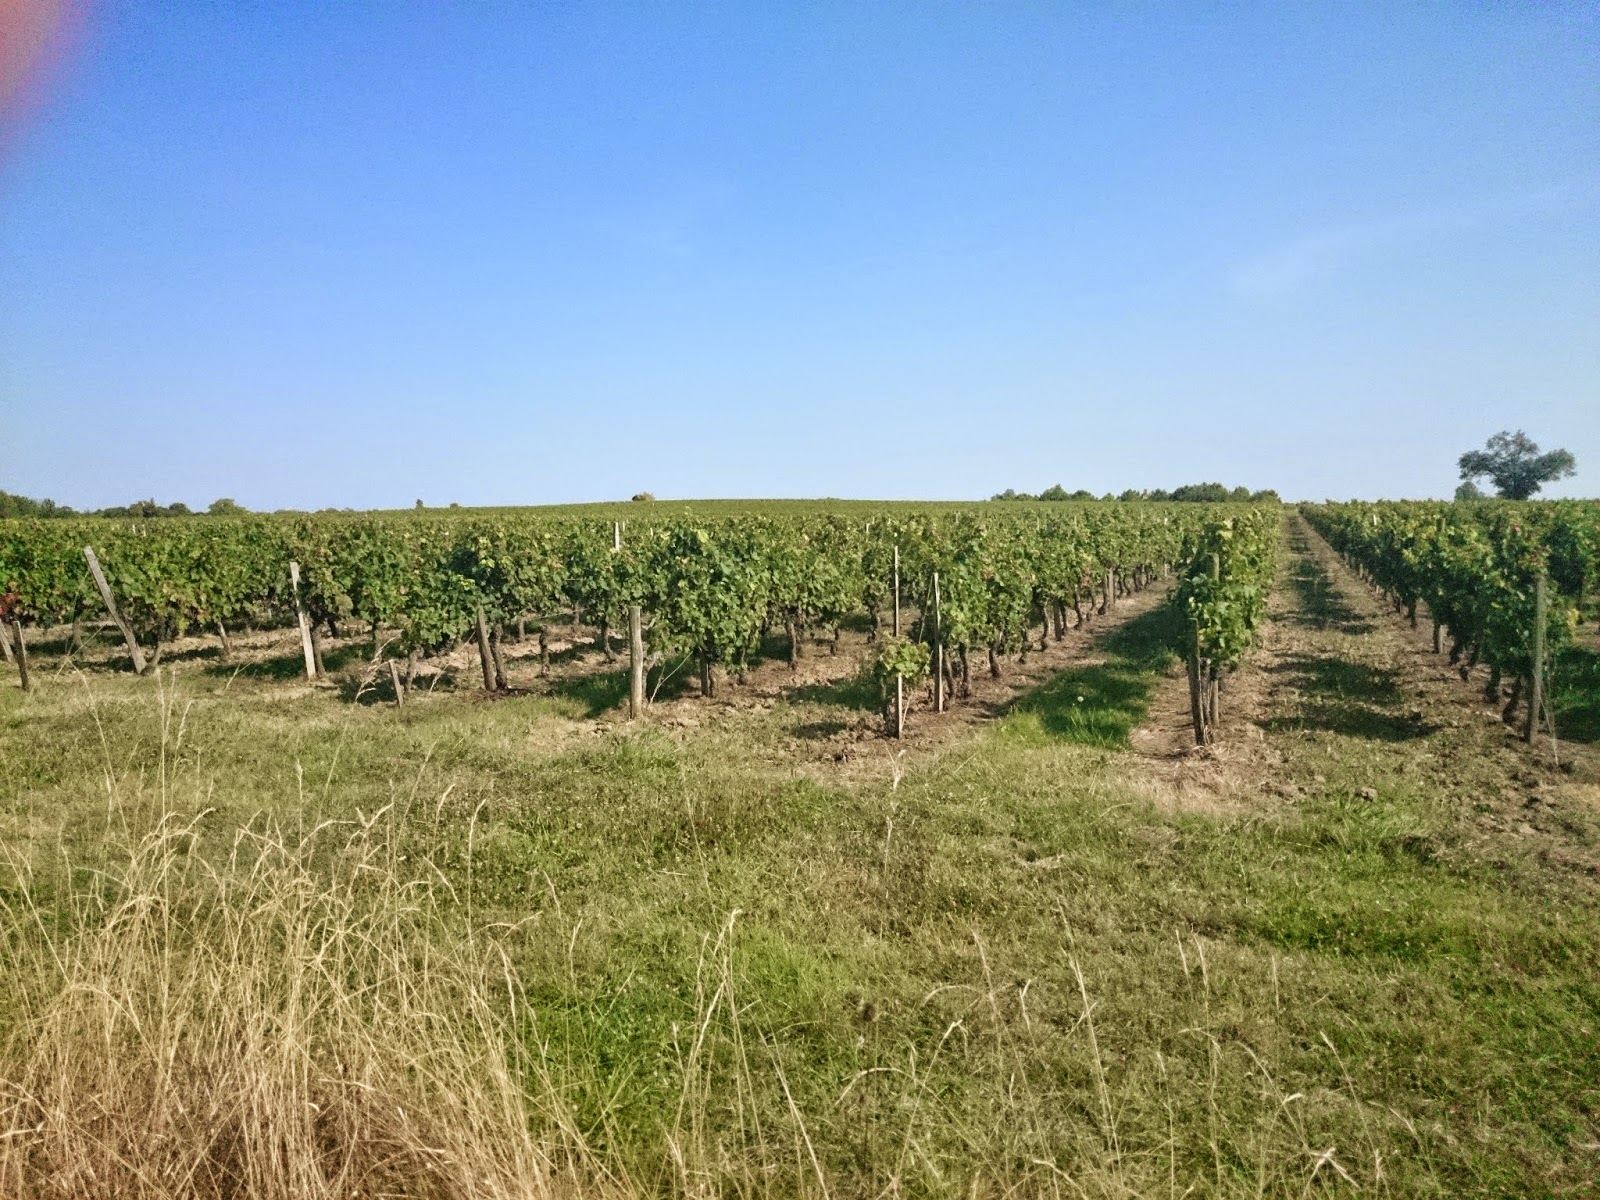 Bordeaux region in France, grapes,vine